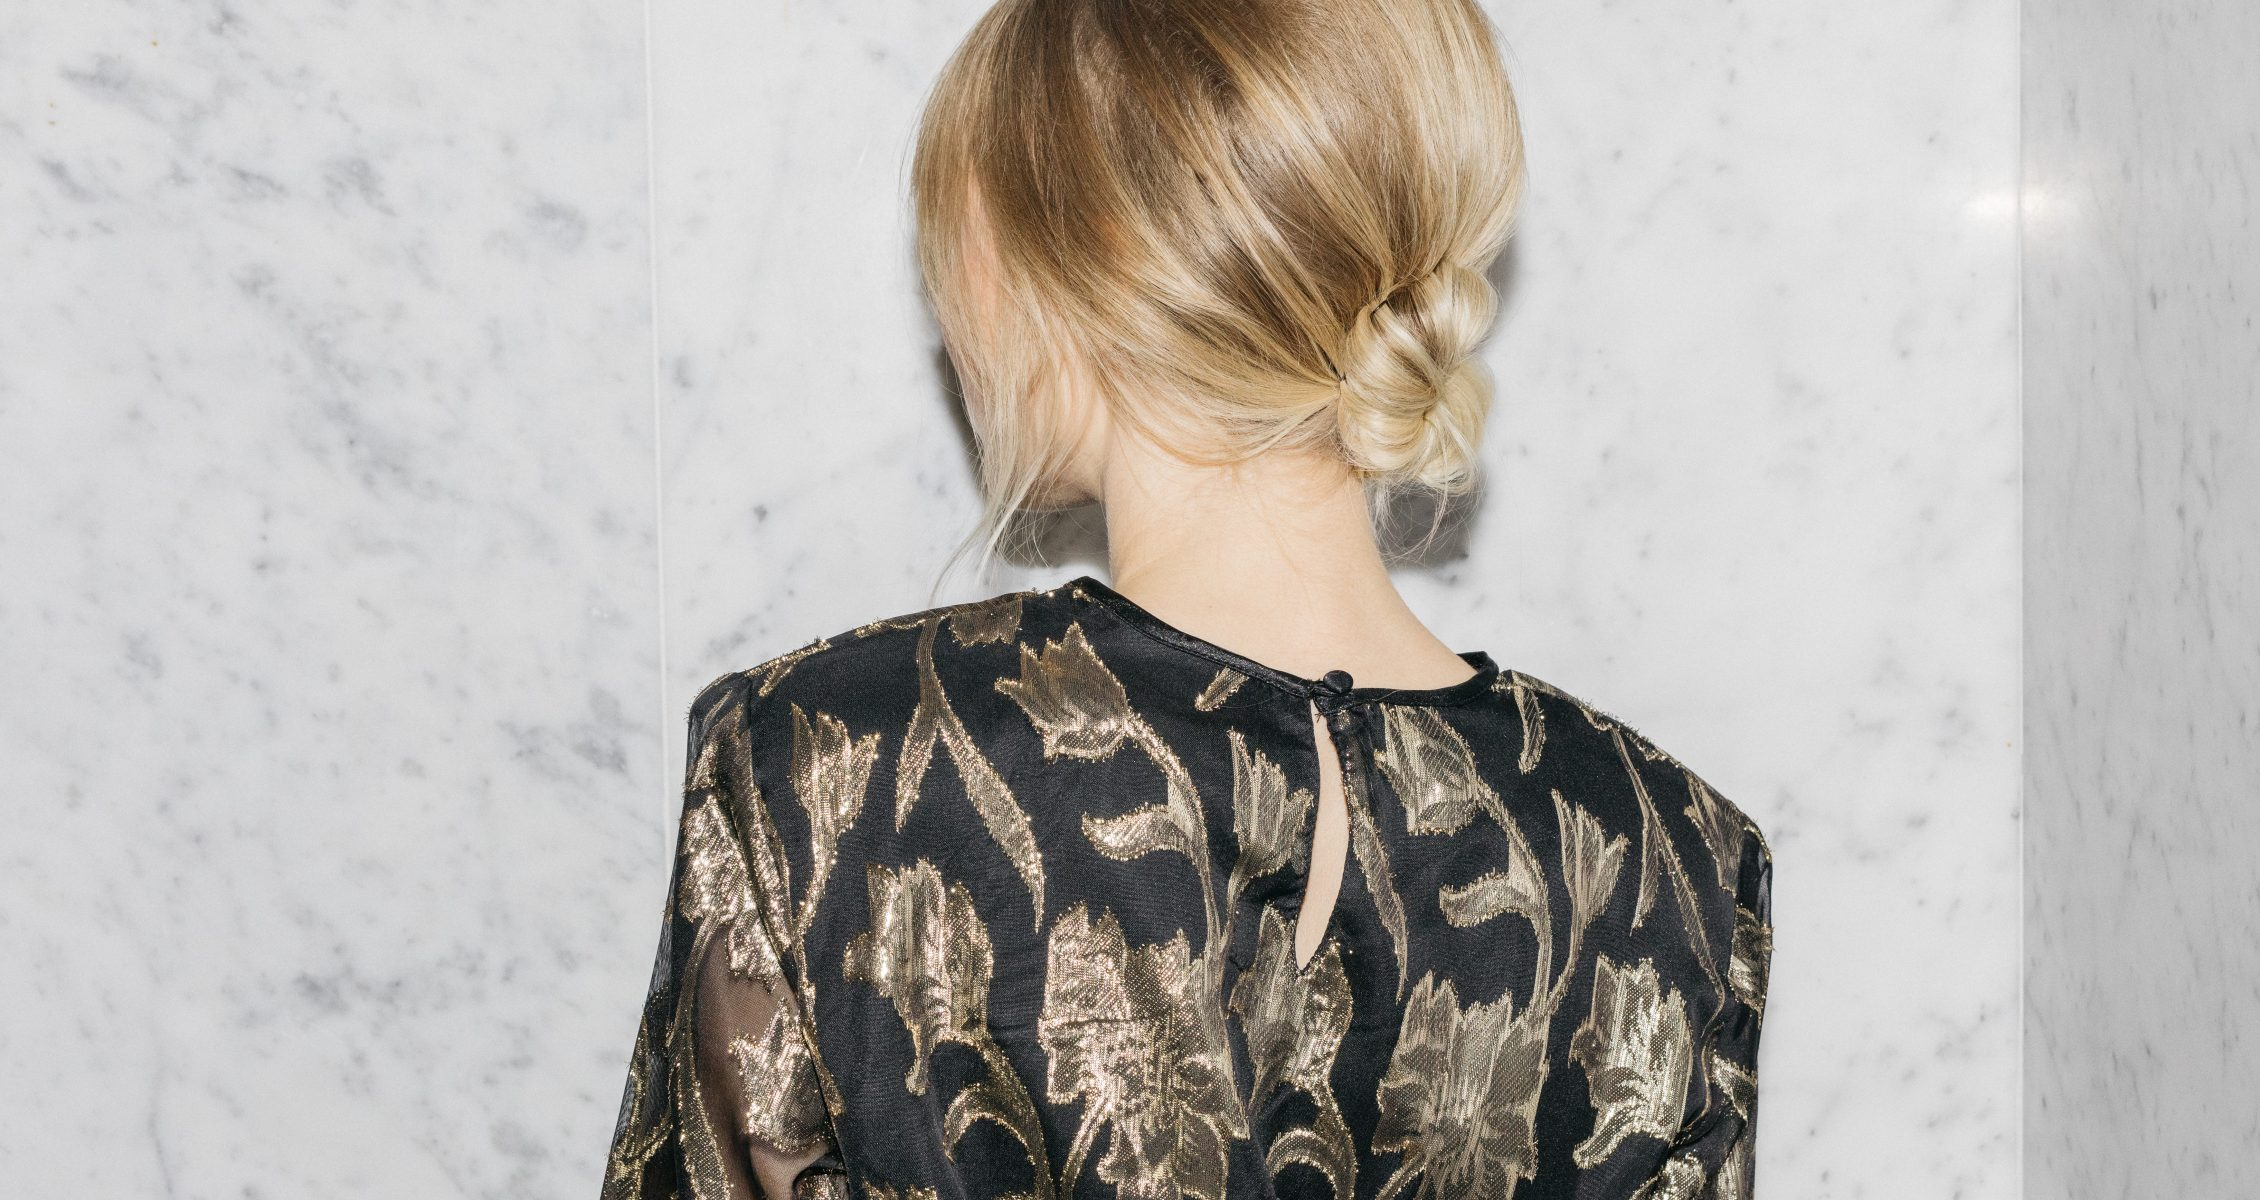 woman with blonde hair in a low bun has her back to the camera and poses on a marble background with a gold and black dress on